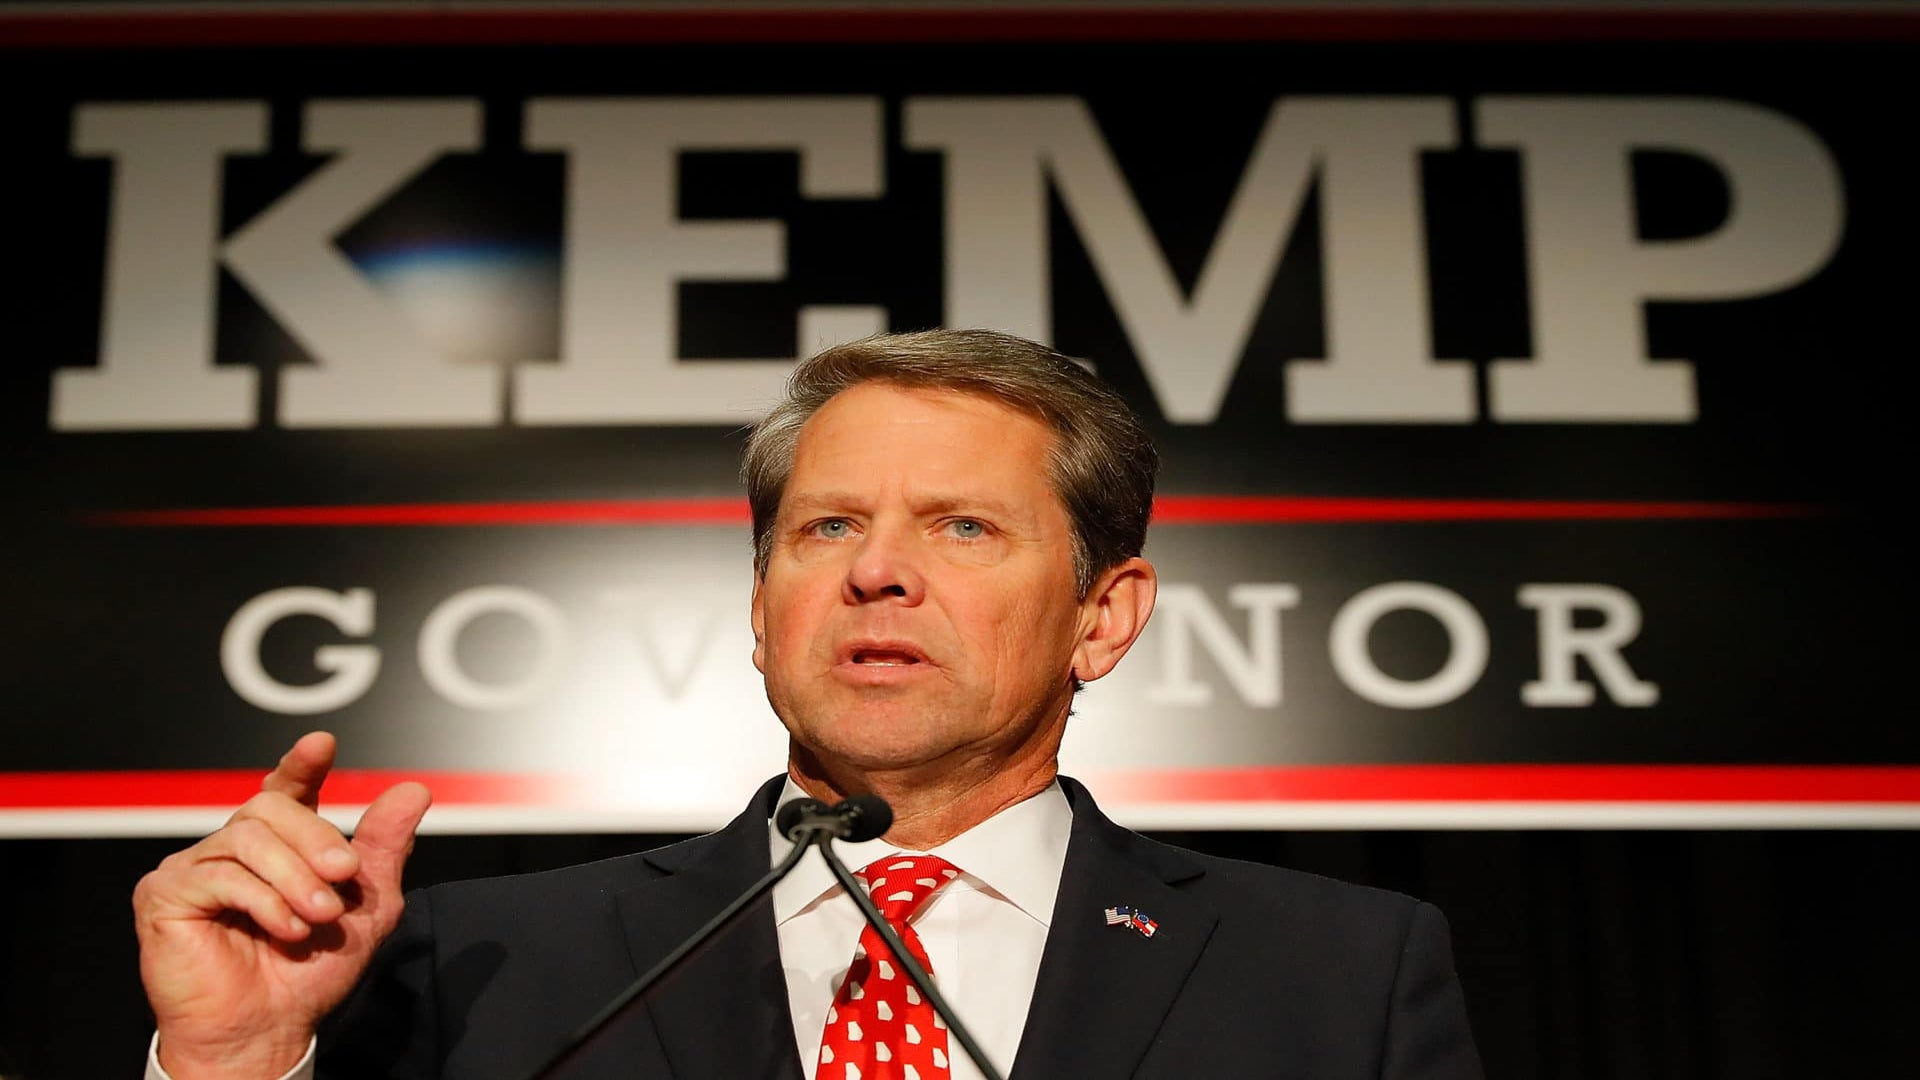 Brian Kemp Declares Victory In Georgia's Gubernatorial Race Against Stacey Abrams